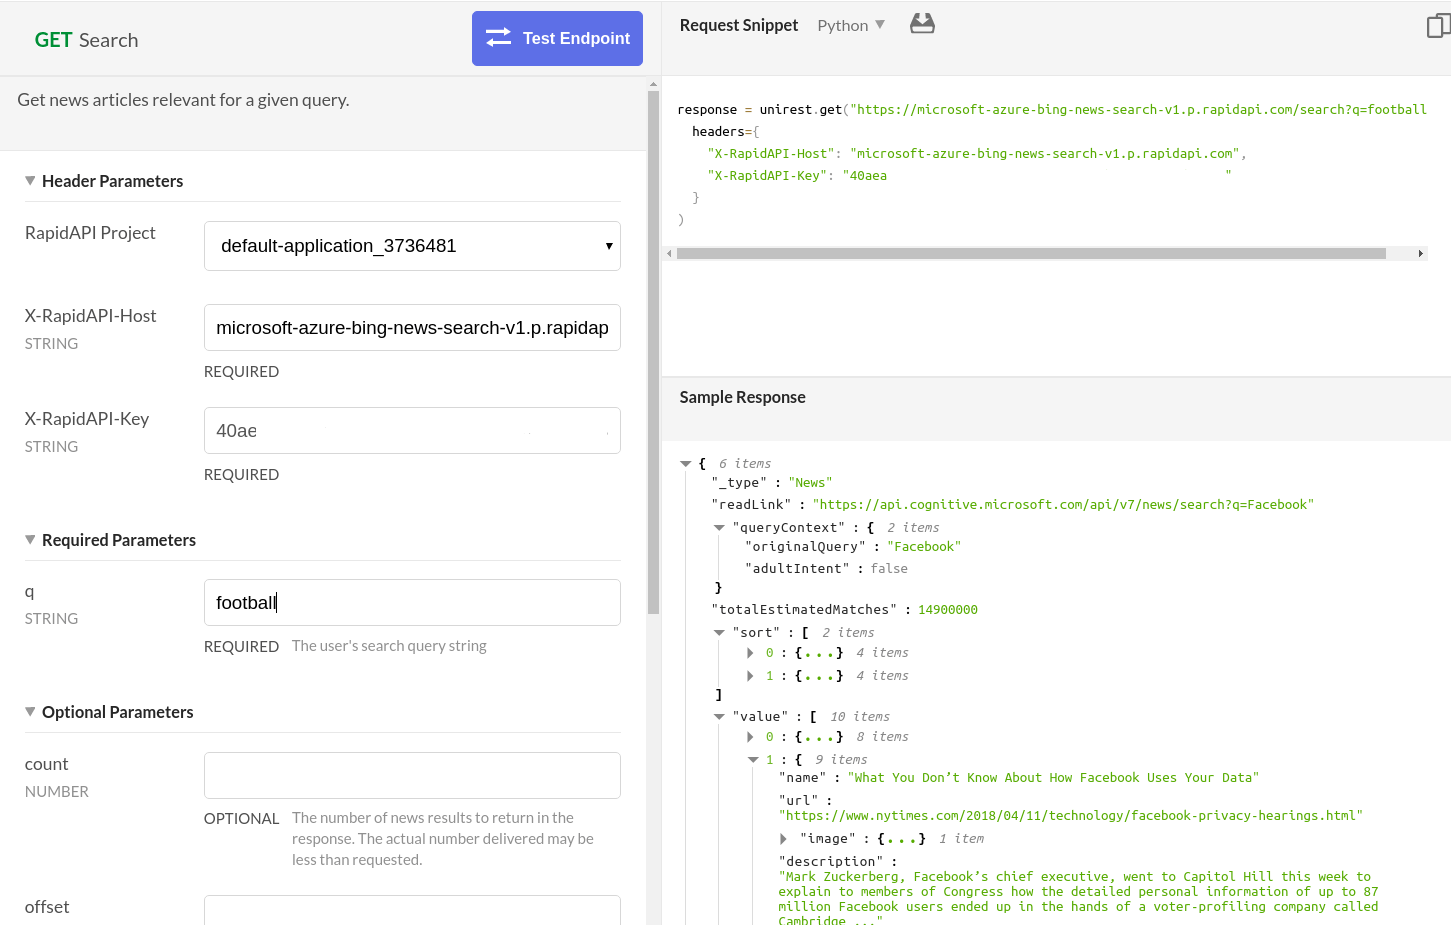 Bing News Search API Test Endpoint